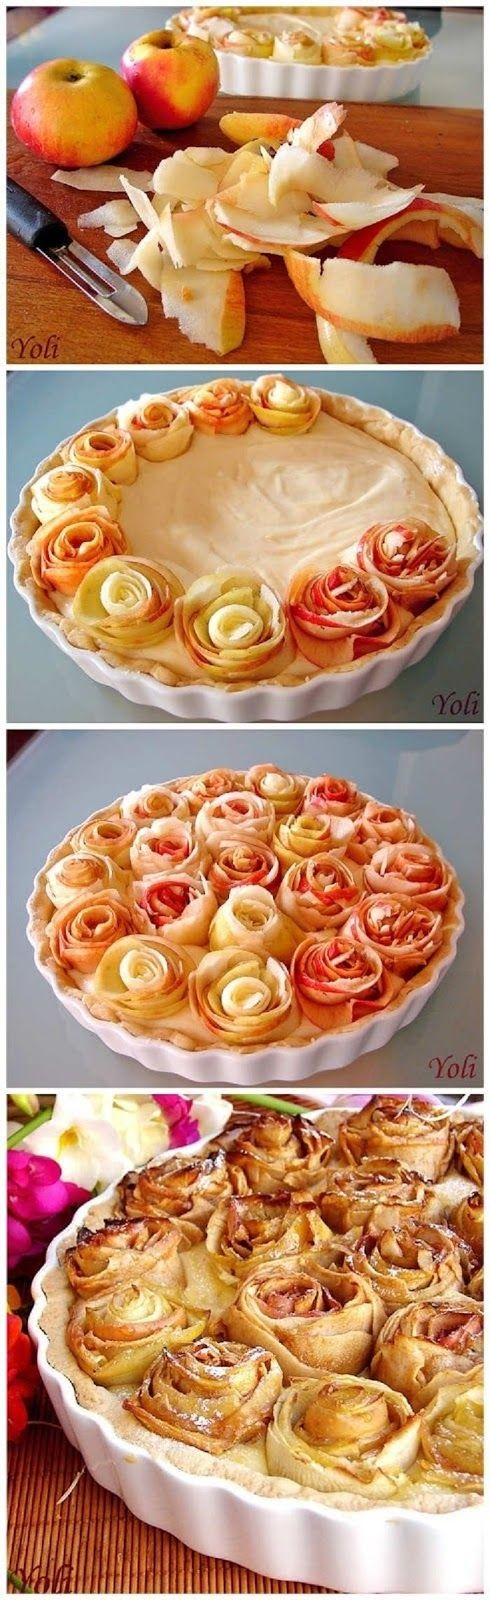 DIY Flower Apple Pie food diy party ideas diy food diy recipes diy baking diy desert diy pie diy food art diy apple pie diy stuffed pie